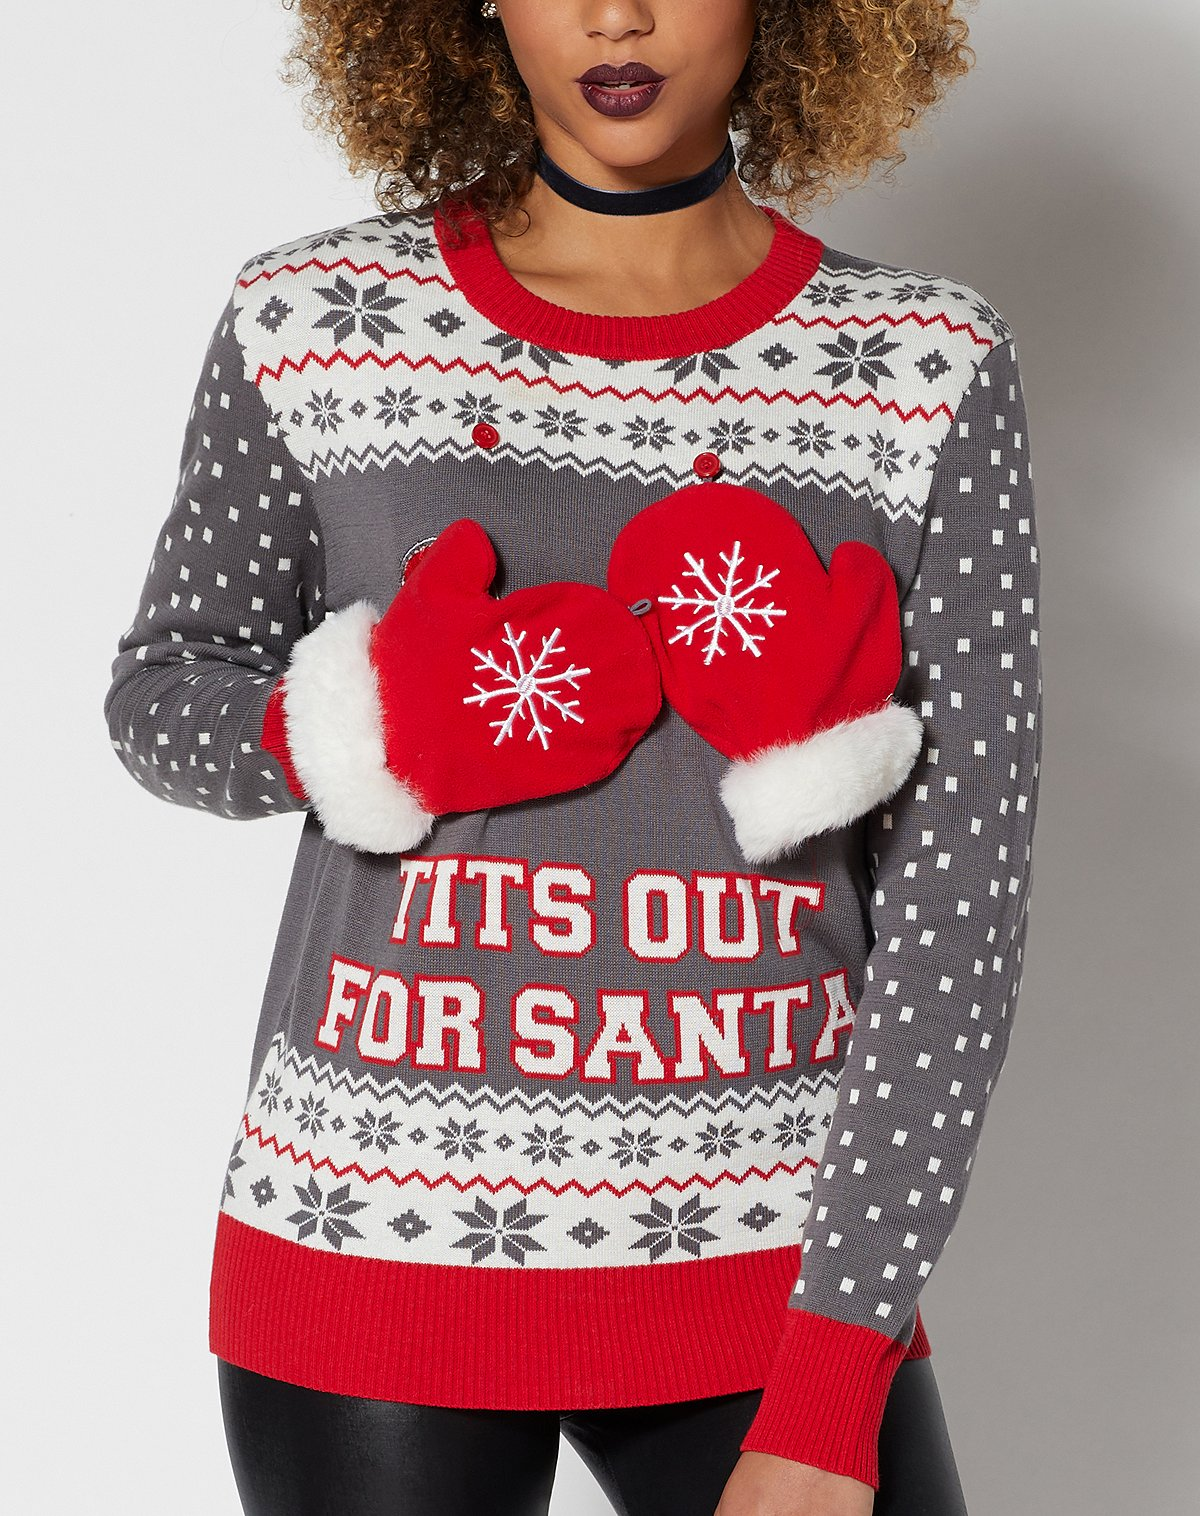 Spencer's Tits Out For Santa Ugly Christmas Sweater